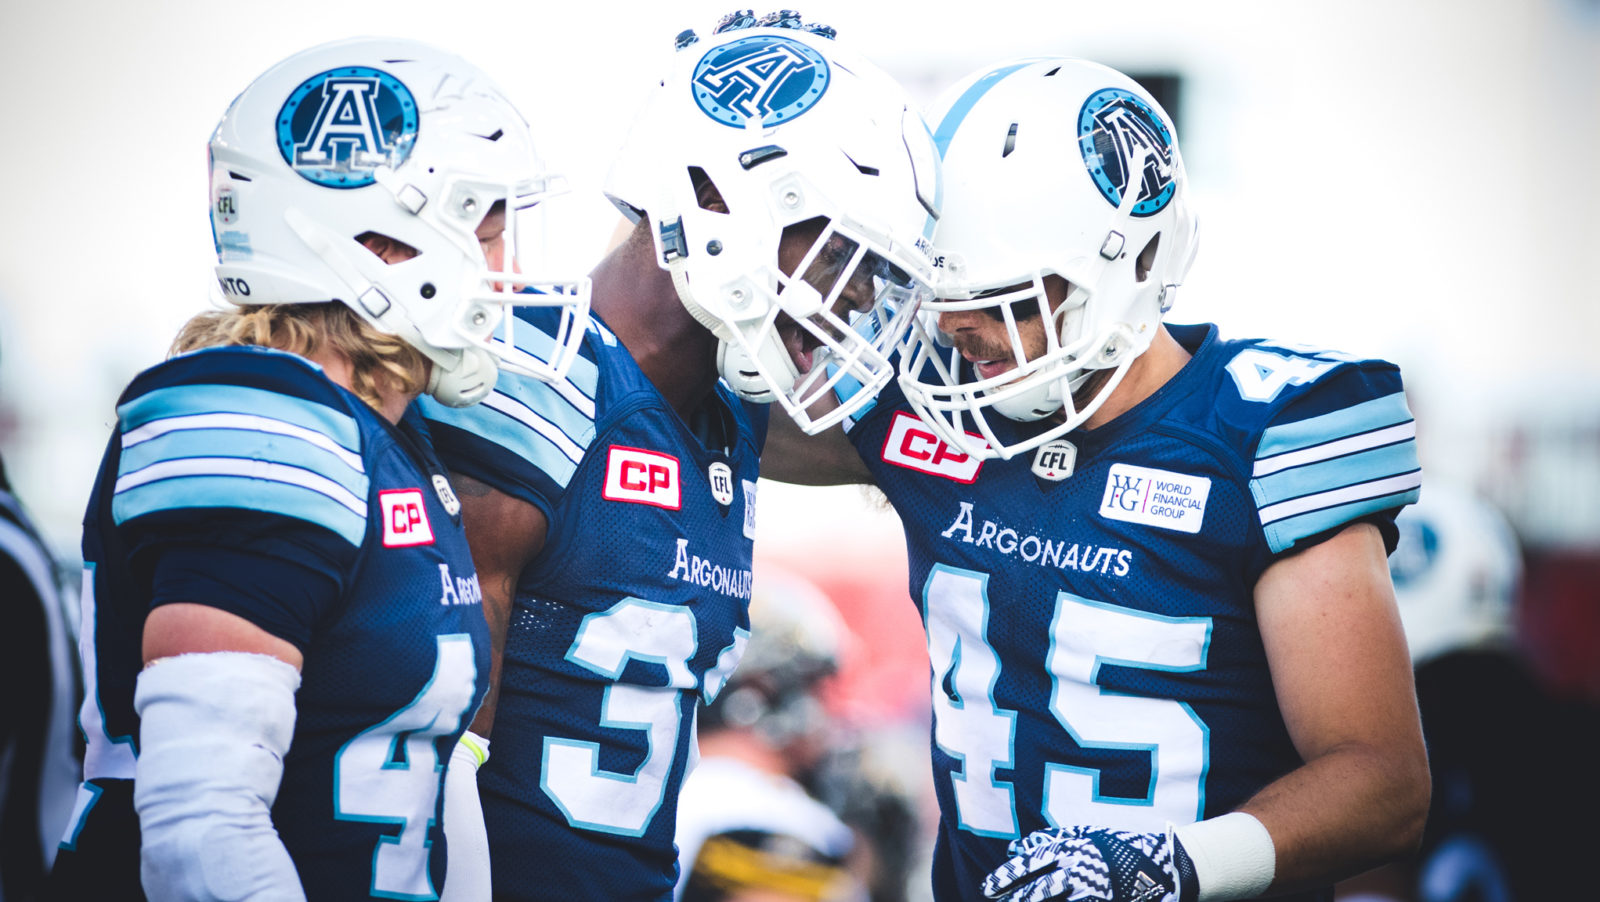 Sailing in the right direction – the Toronto Argonauts are improving.